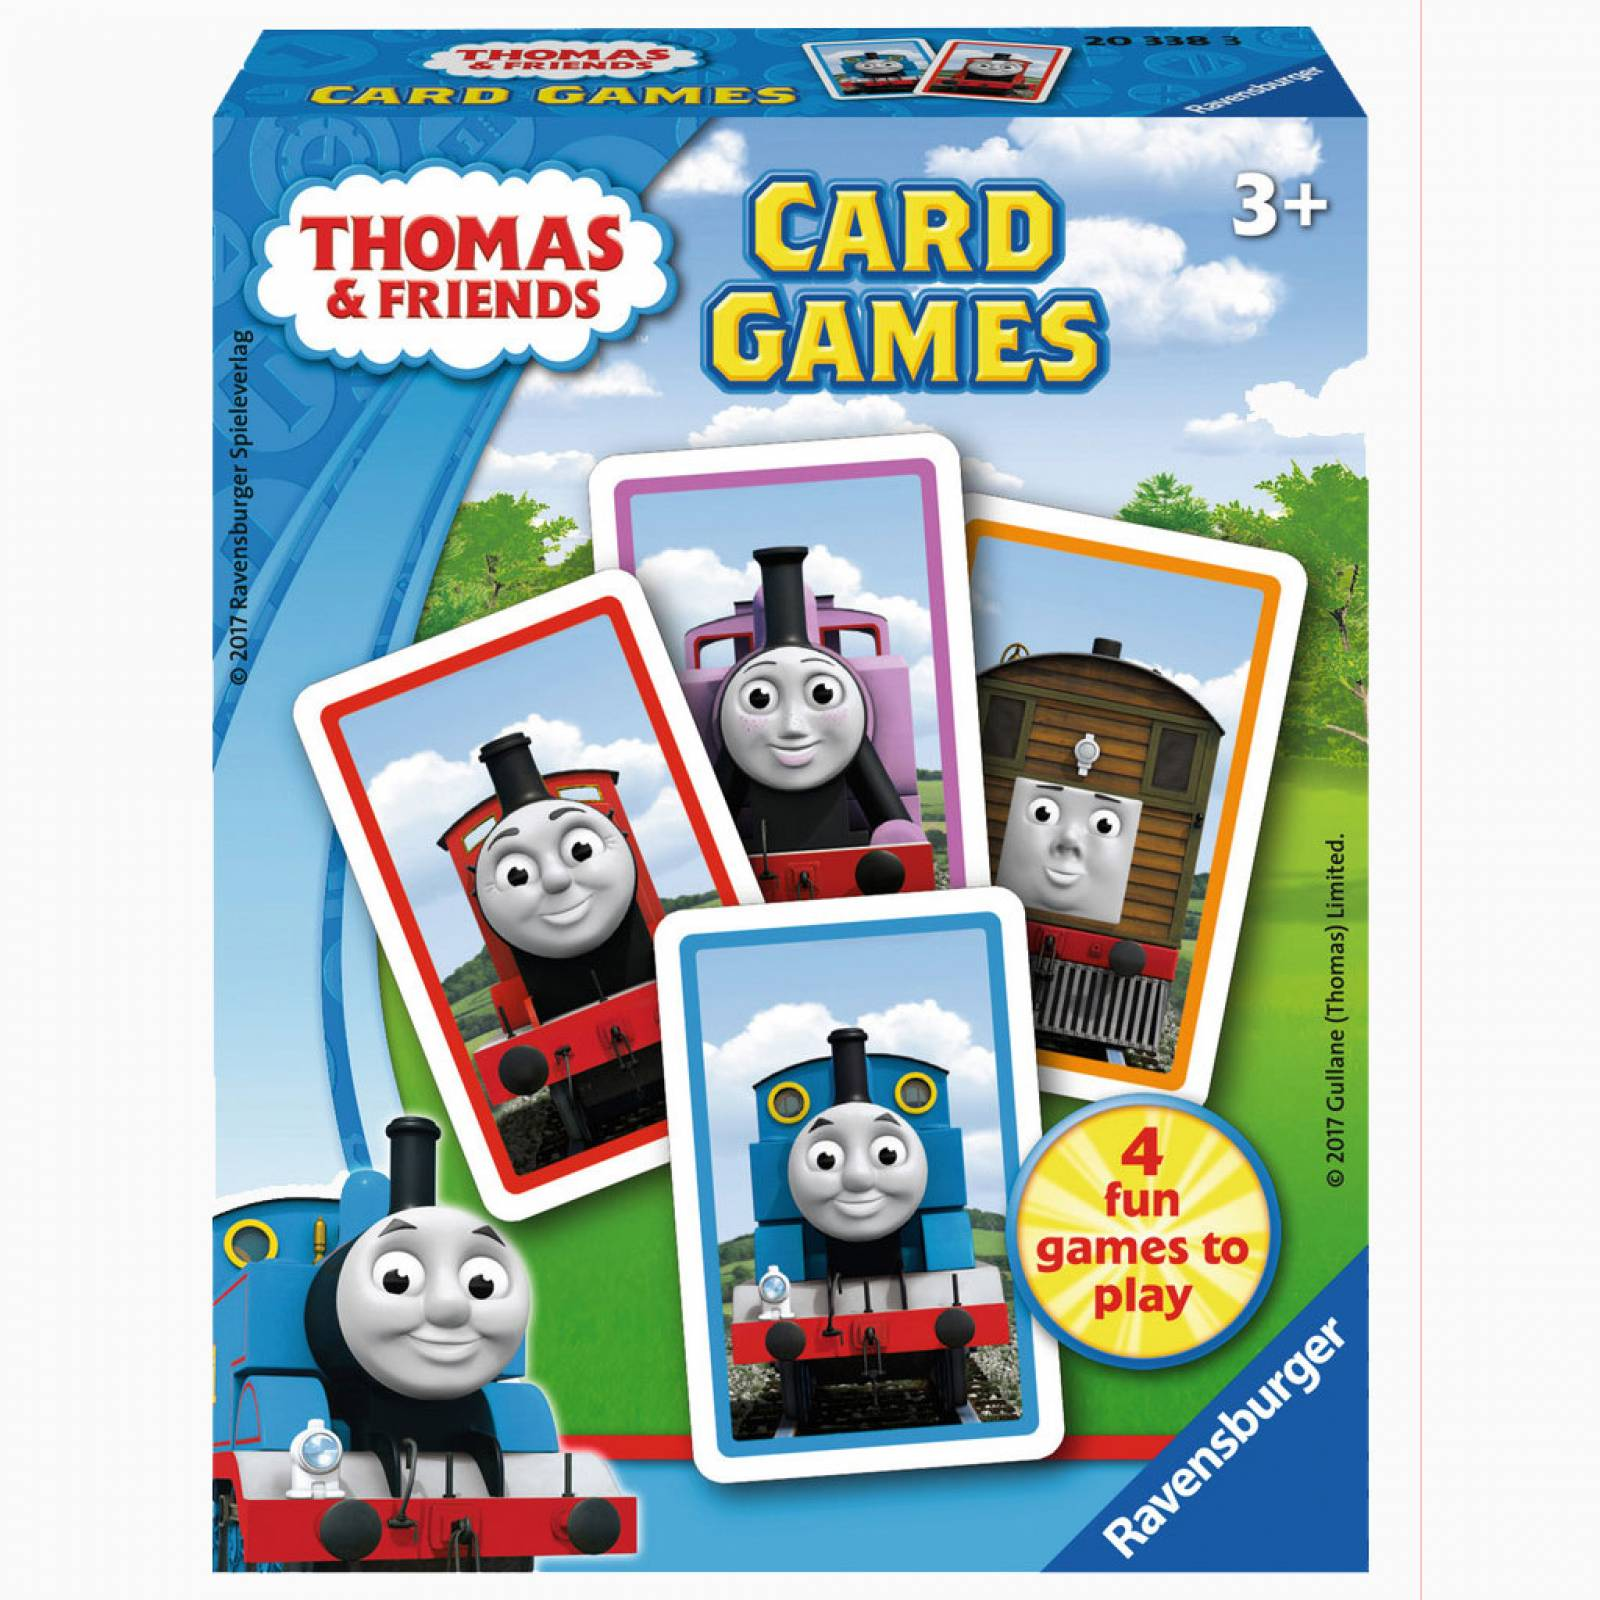 Thomas & Friends Card Games 3+